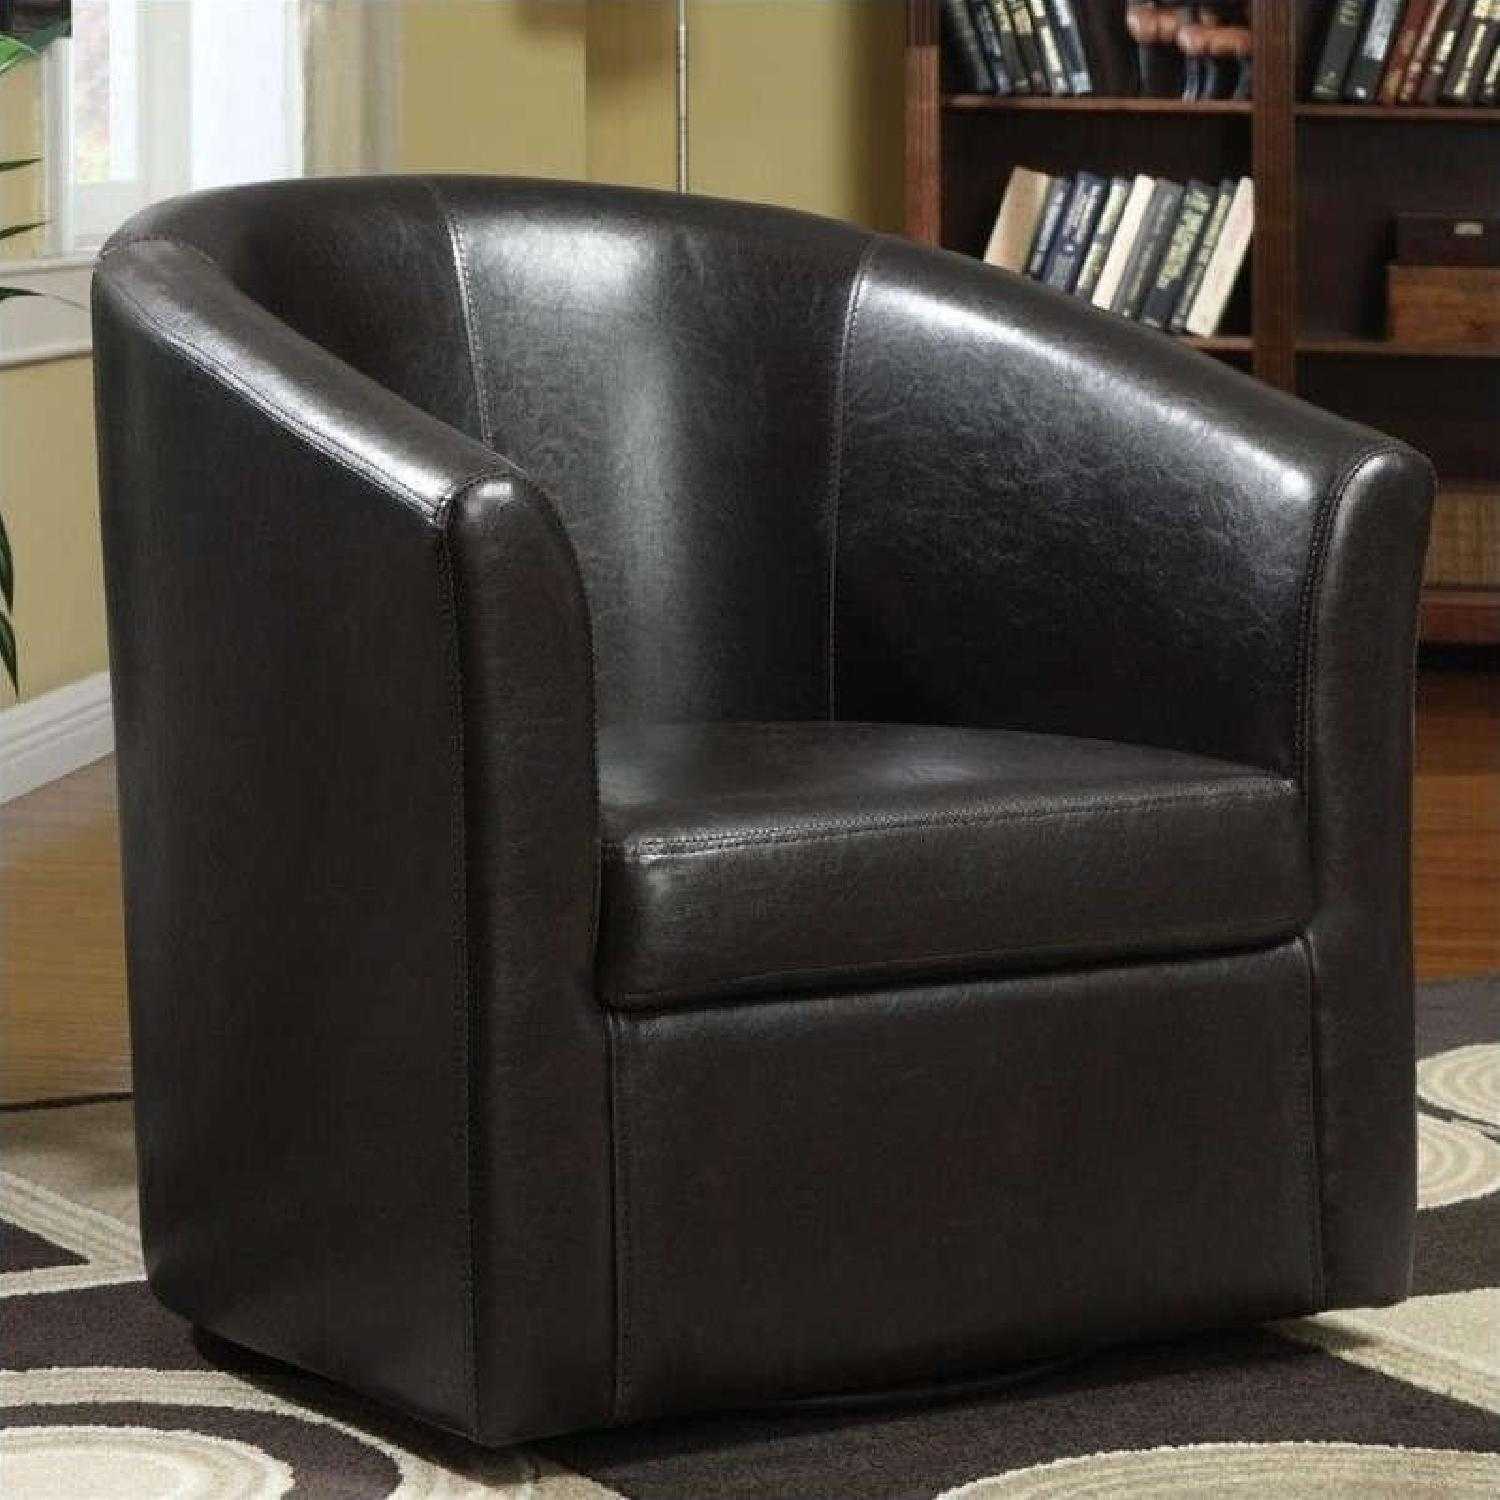 Modern Accent Chair in Dark Brown Faux Leather - image-2